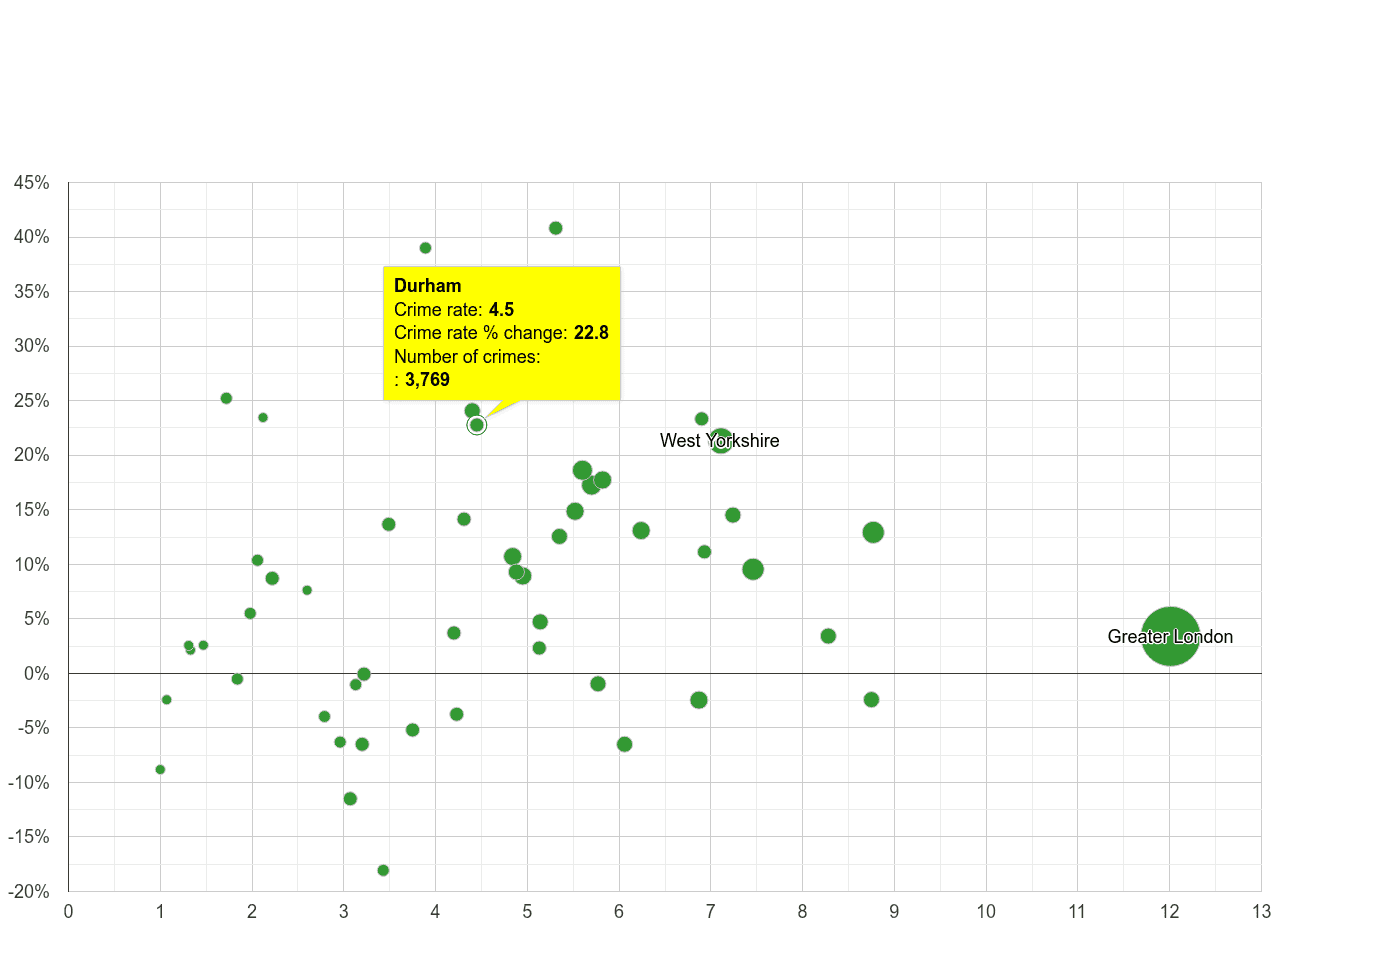 Durham county vehicle crime rate compared to other counties